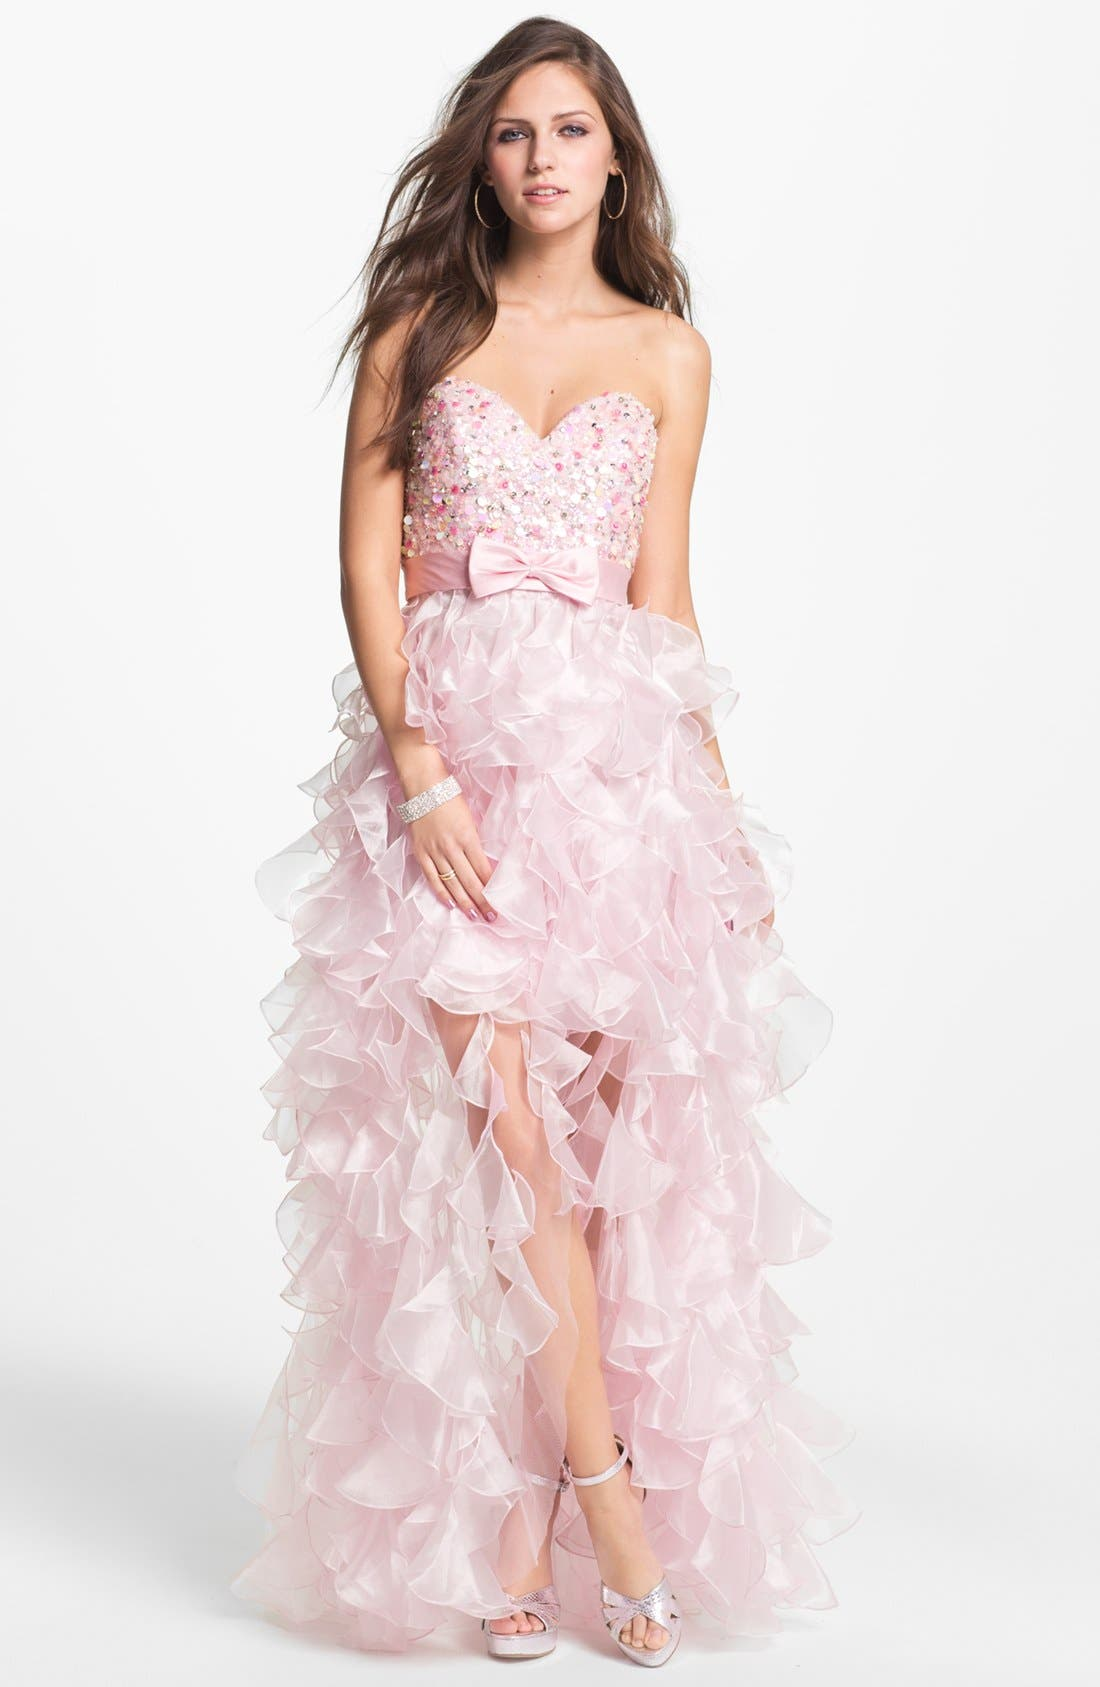 Main Image - Sherri Hill 'Corkscrew' Embellished Ruffled Chiffon Dress